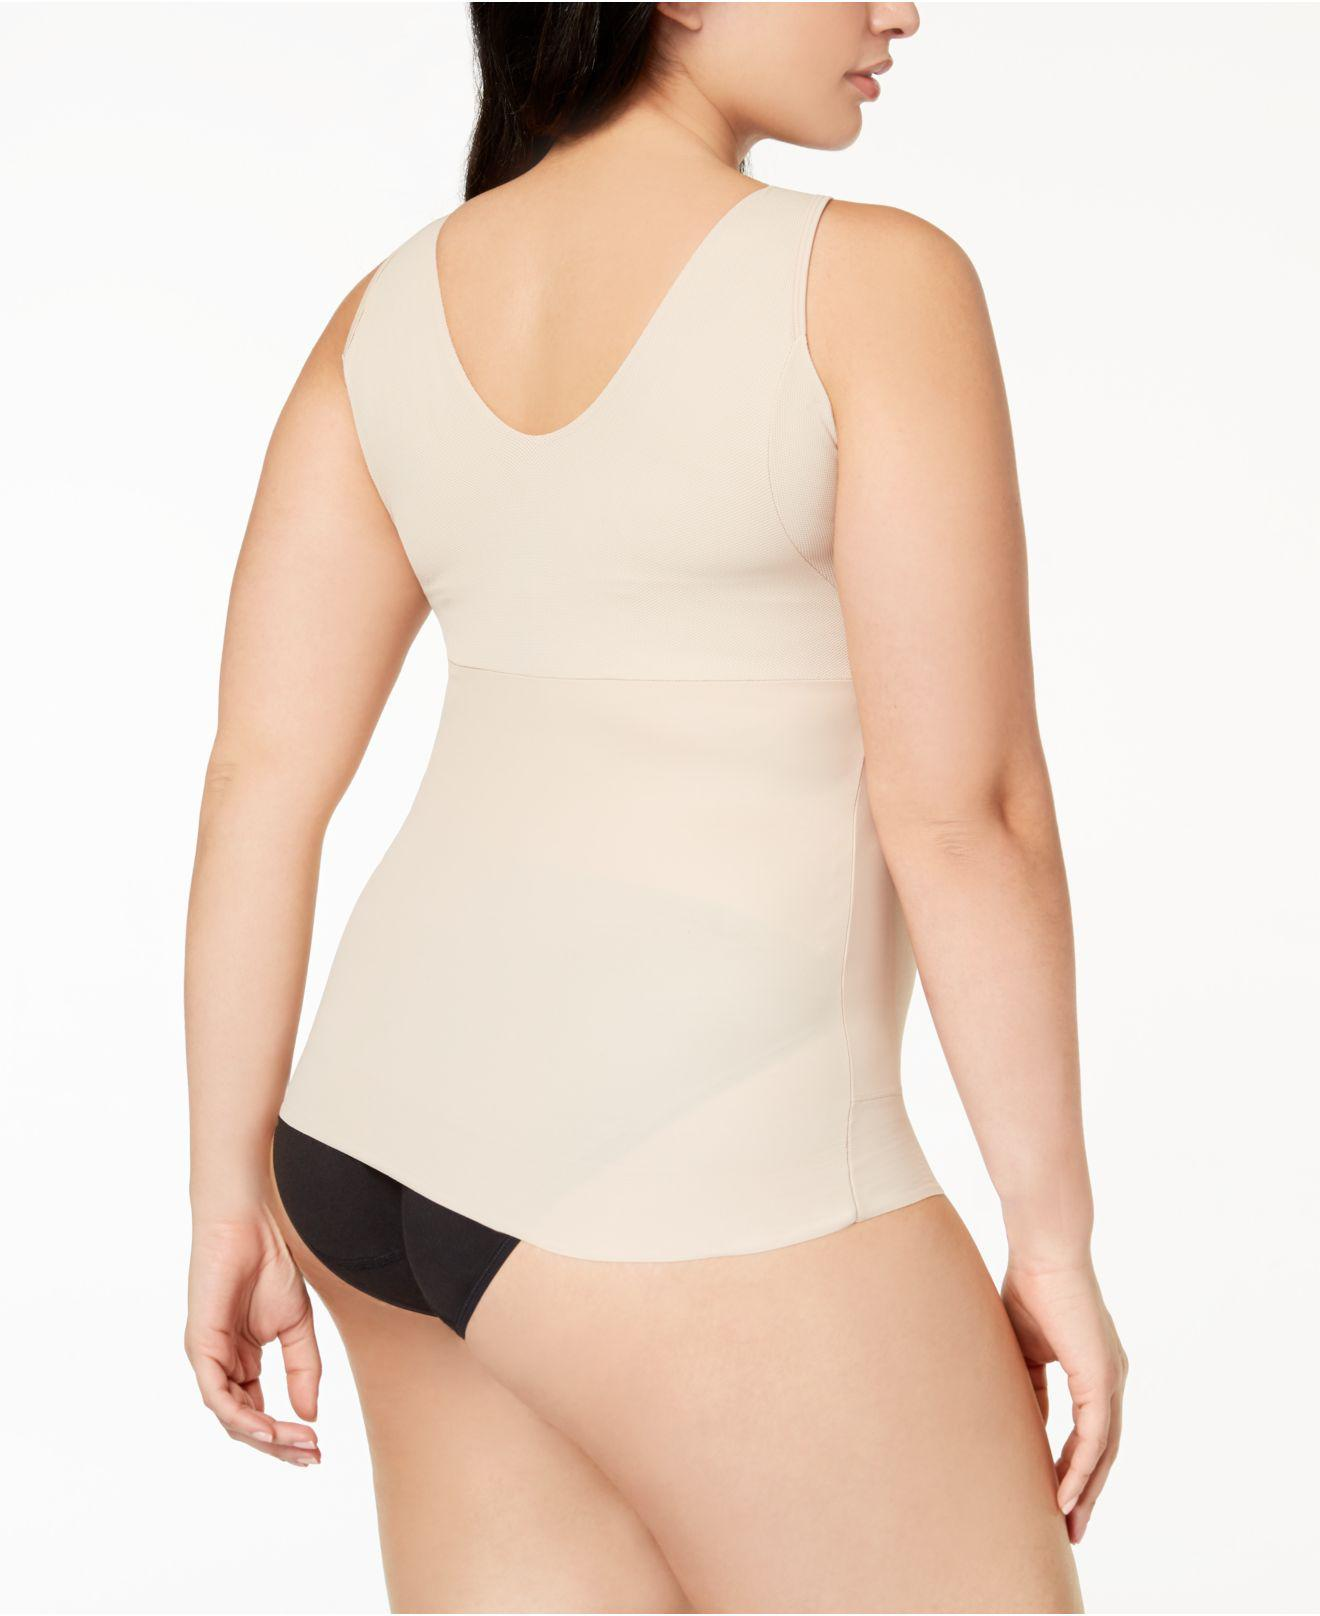 21f410c8a7 Lyst - Miraclesuit Cool Choice Plus Size Extra-firm-control Camisole 2403  in Natural